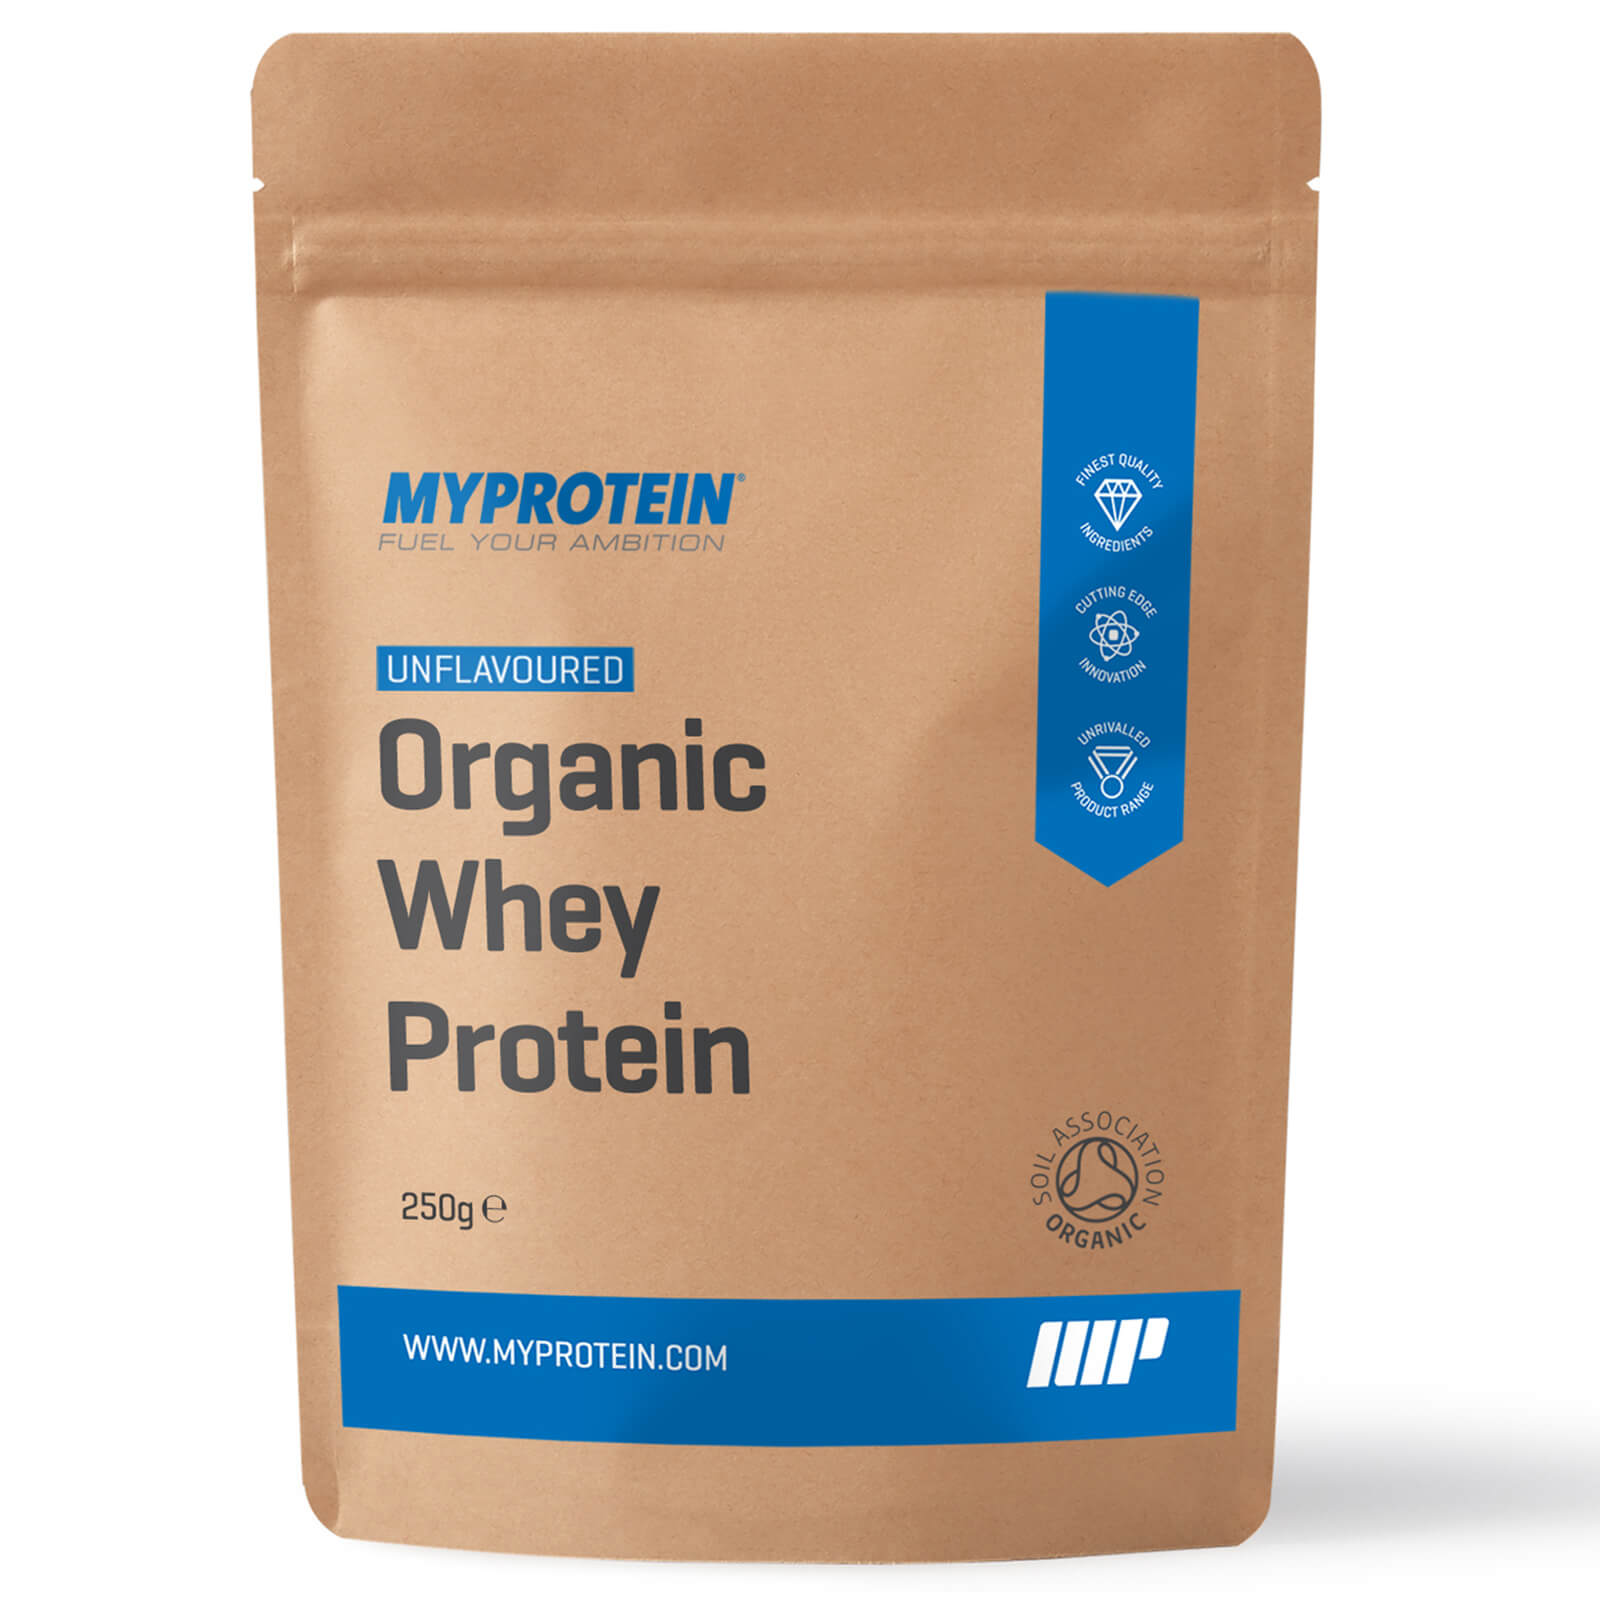 Organic Whey Protein, 250g, Unflavoured